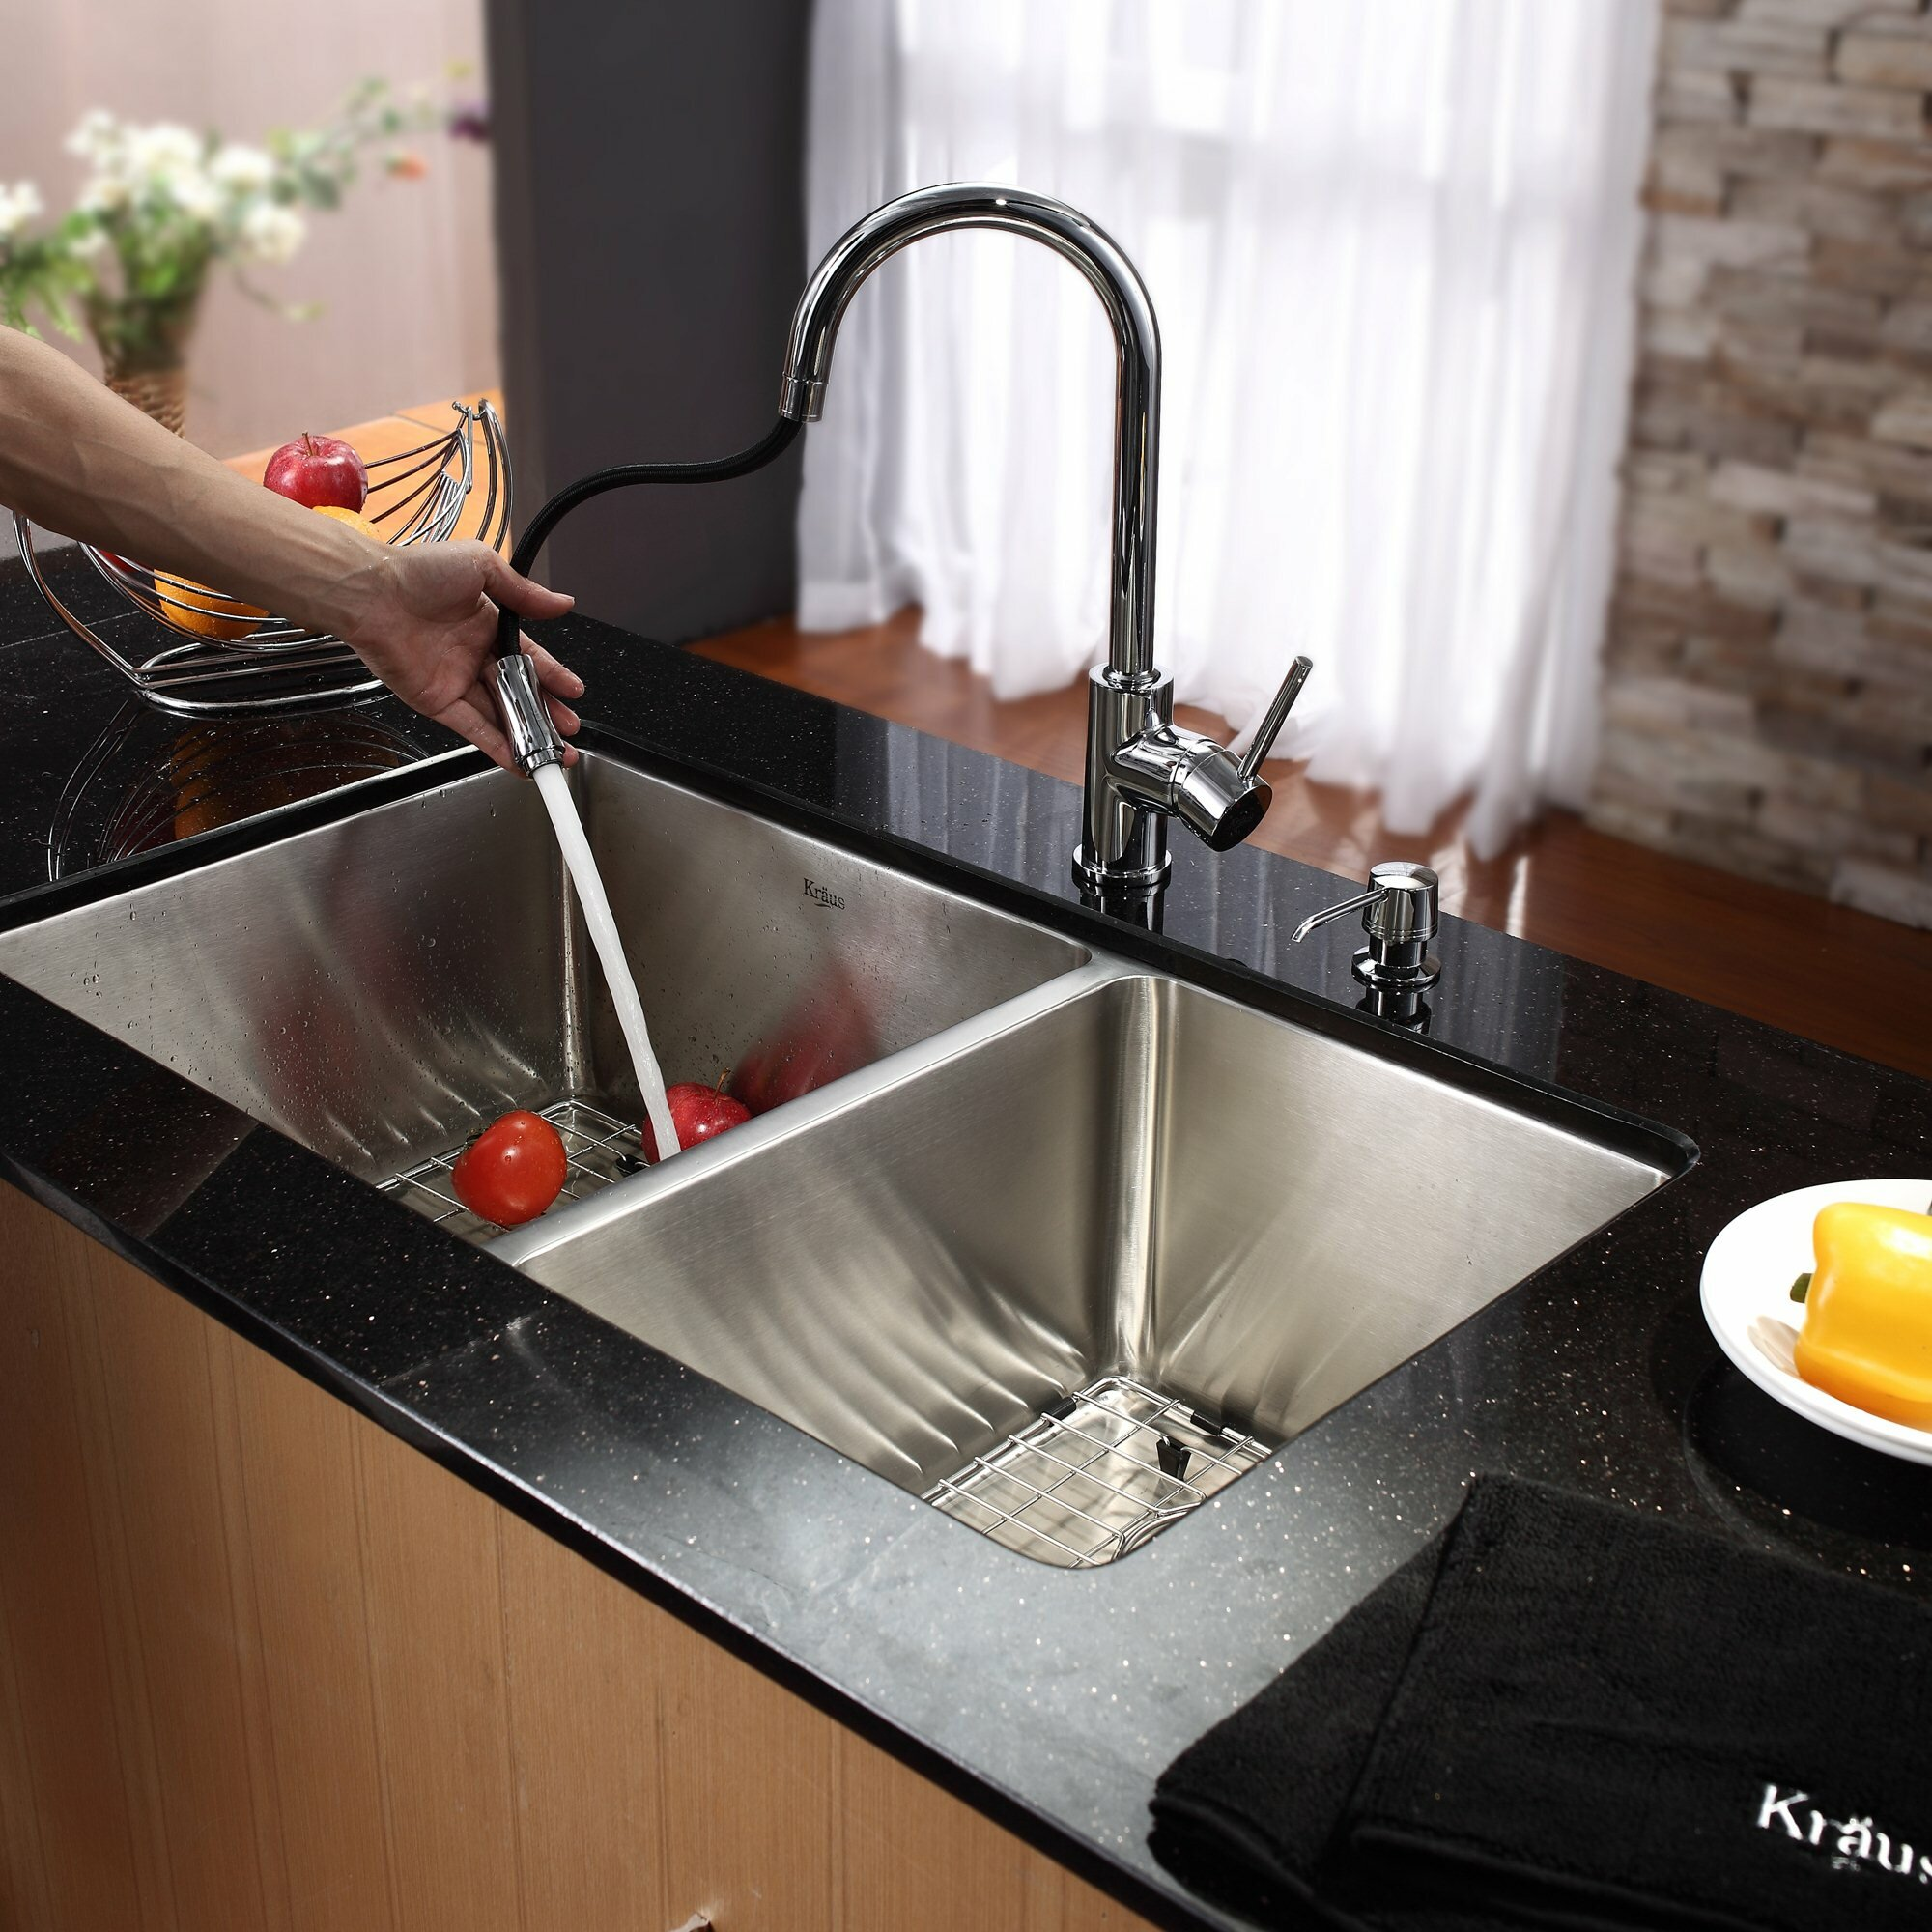 Kraus Undermount 70/30 Double Bowl Kitchen Sink with Faucet and Soap ...